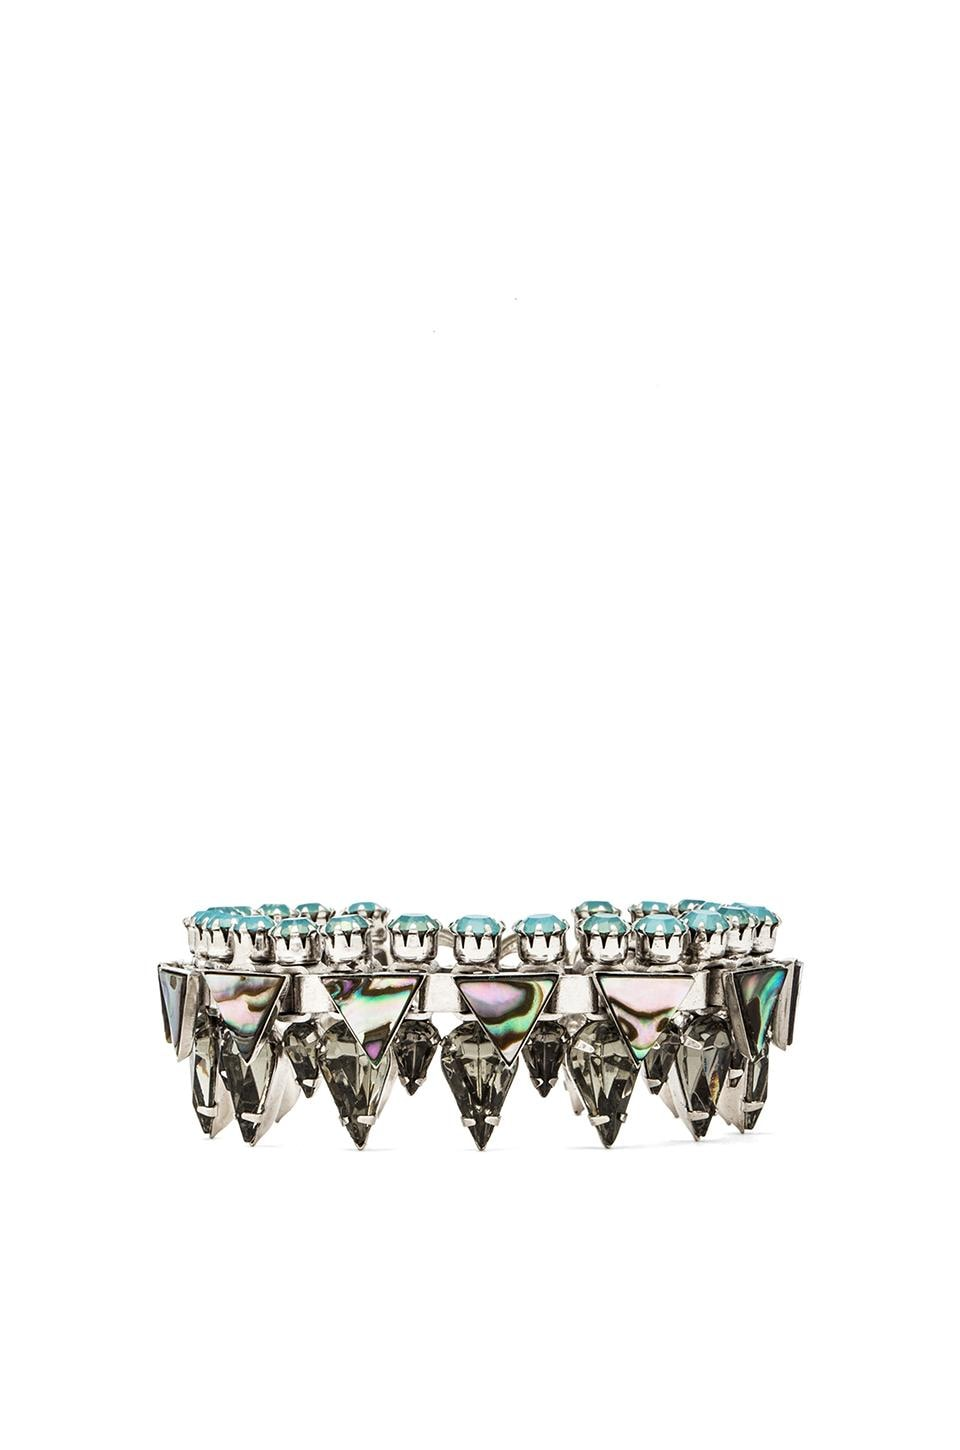 Elizabeth Cole Bracelet in Mother of Pearl